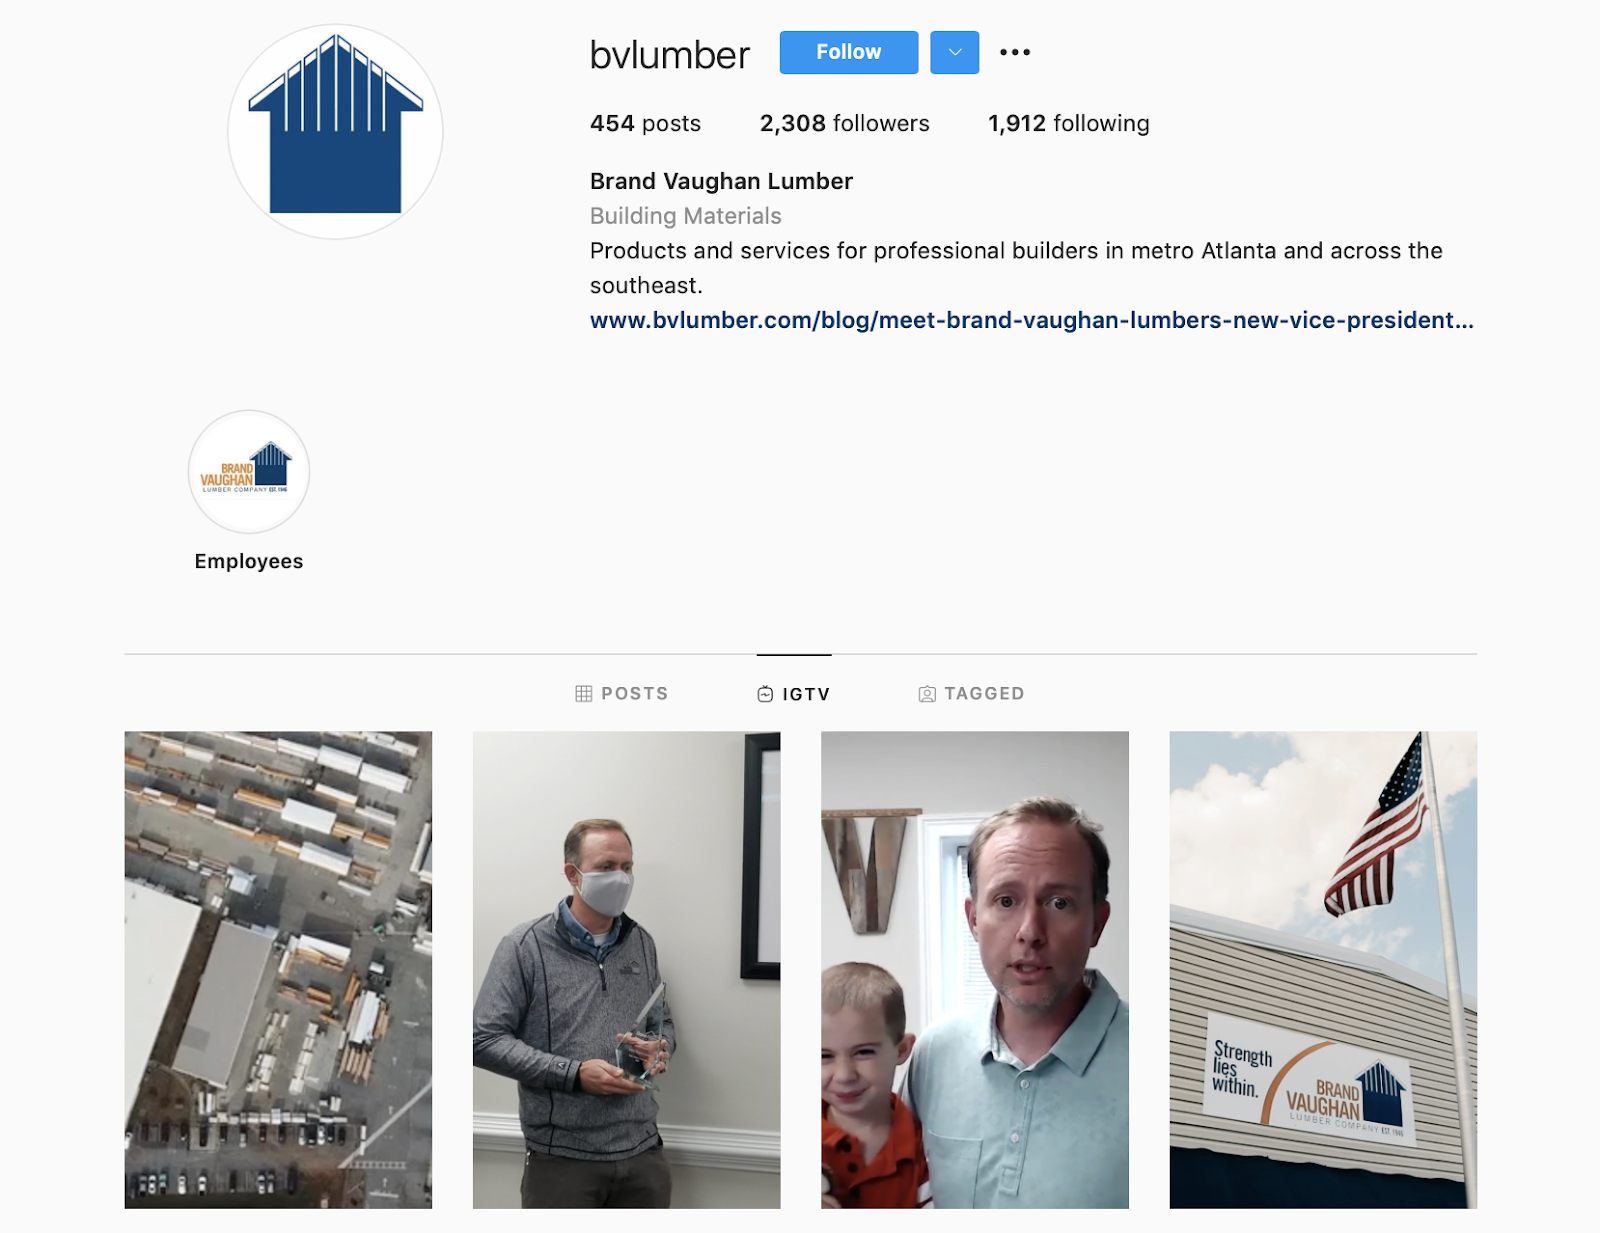 9 Social Media Tips for Builders to Increase Their Business 5